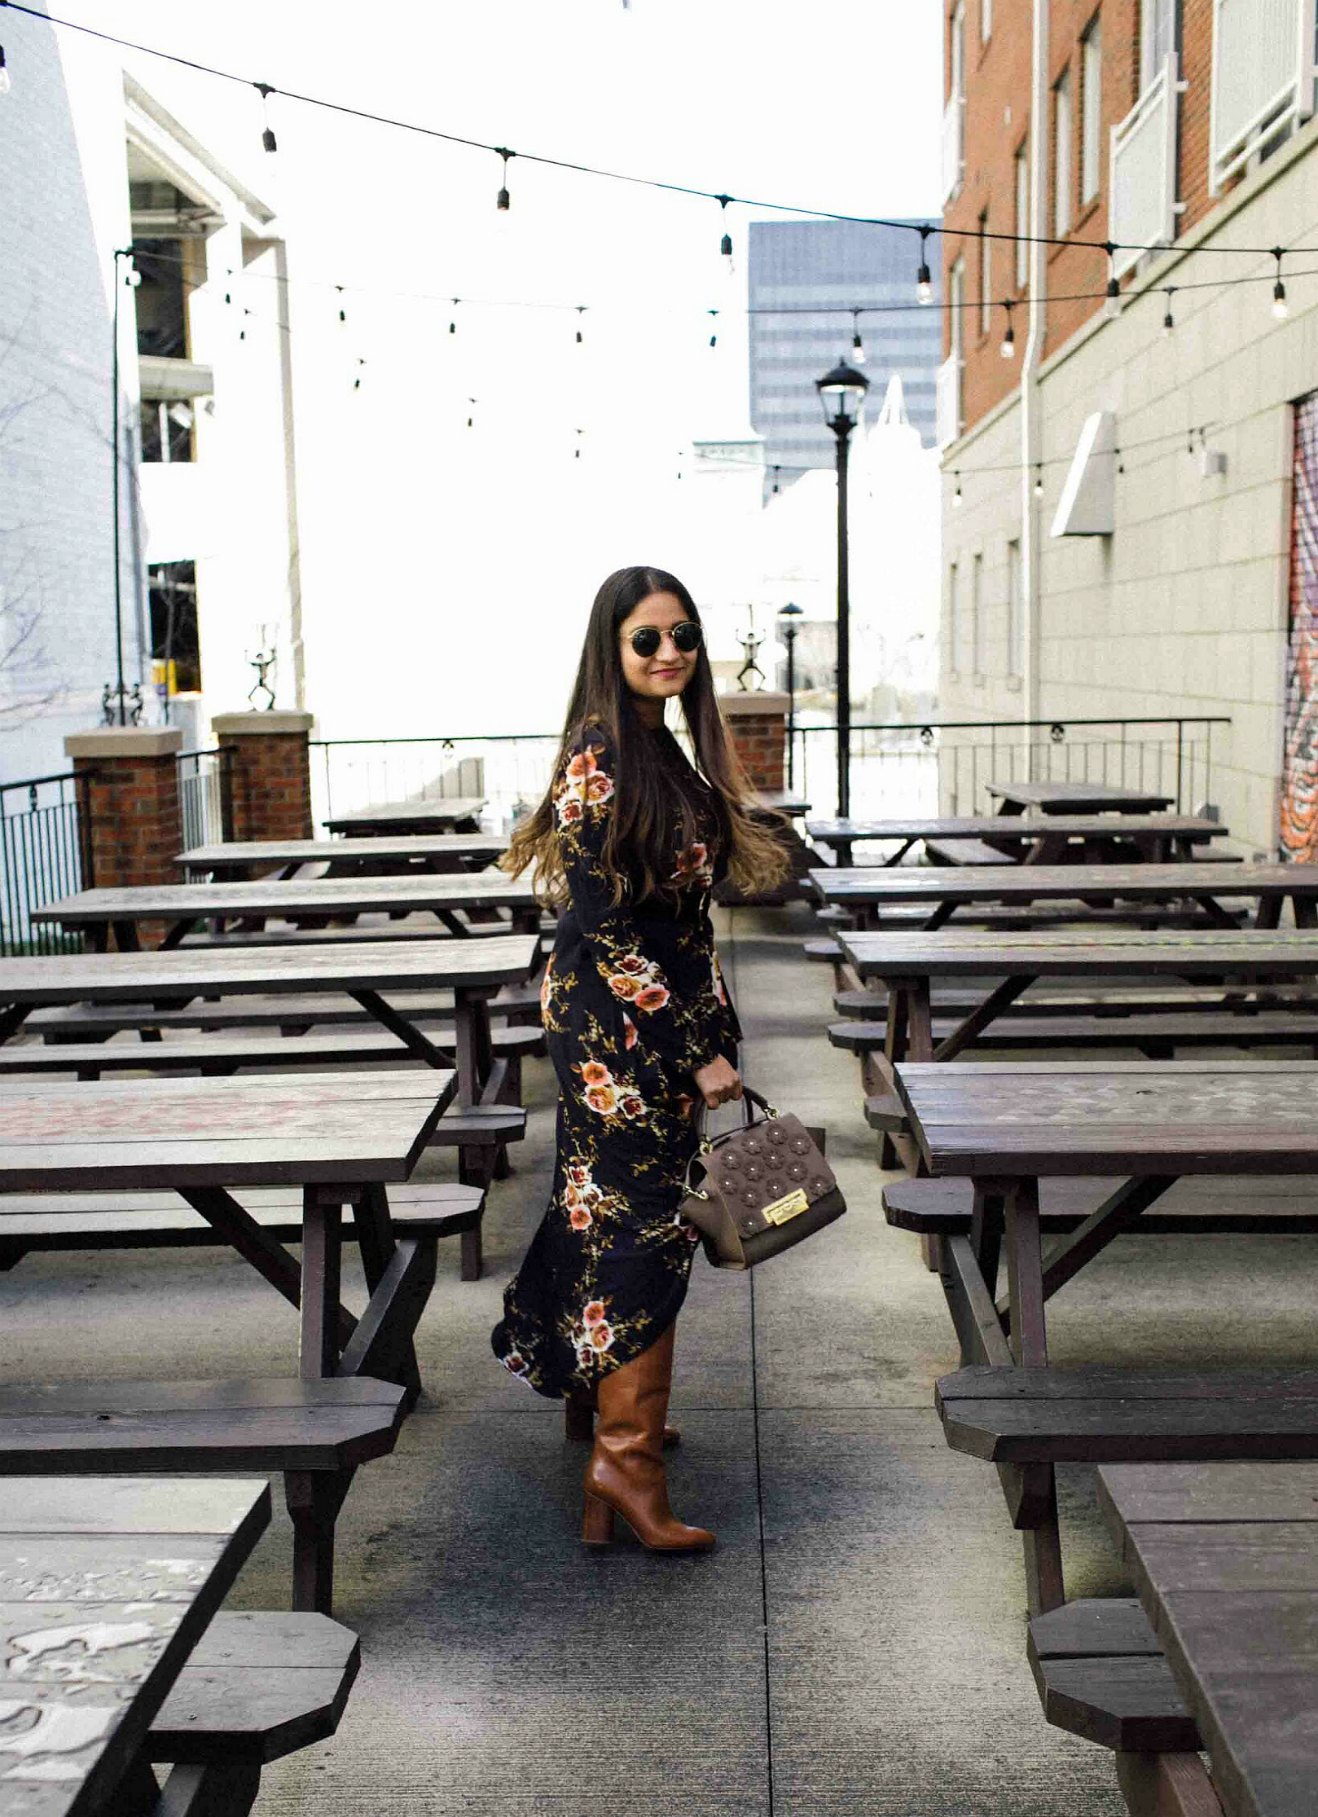 Lifestyle BLog Dreaming Loud sharing how to wear hi-low tops with skinny jeans and boots | SheIn High Low Tunic Top styled by popular Ohio modest fashion blogger, Dreaming Loud